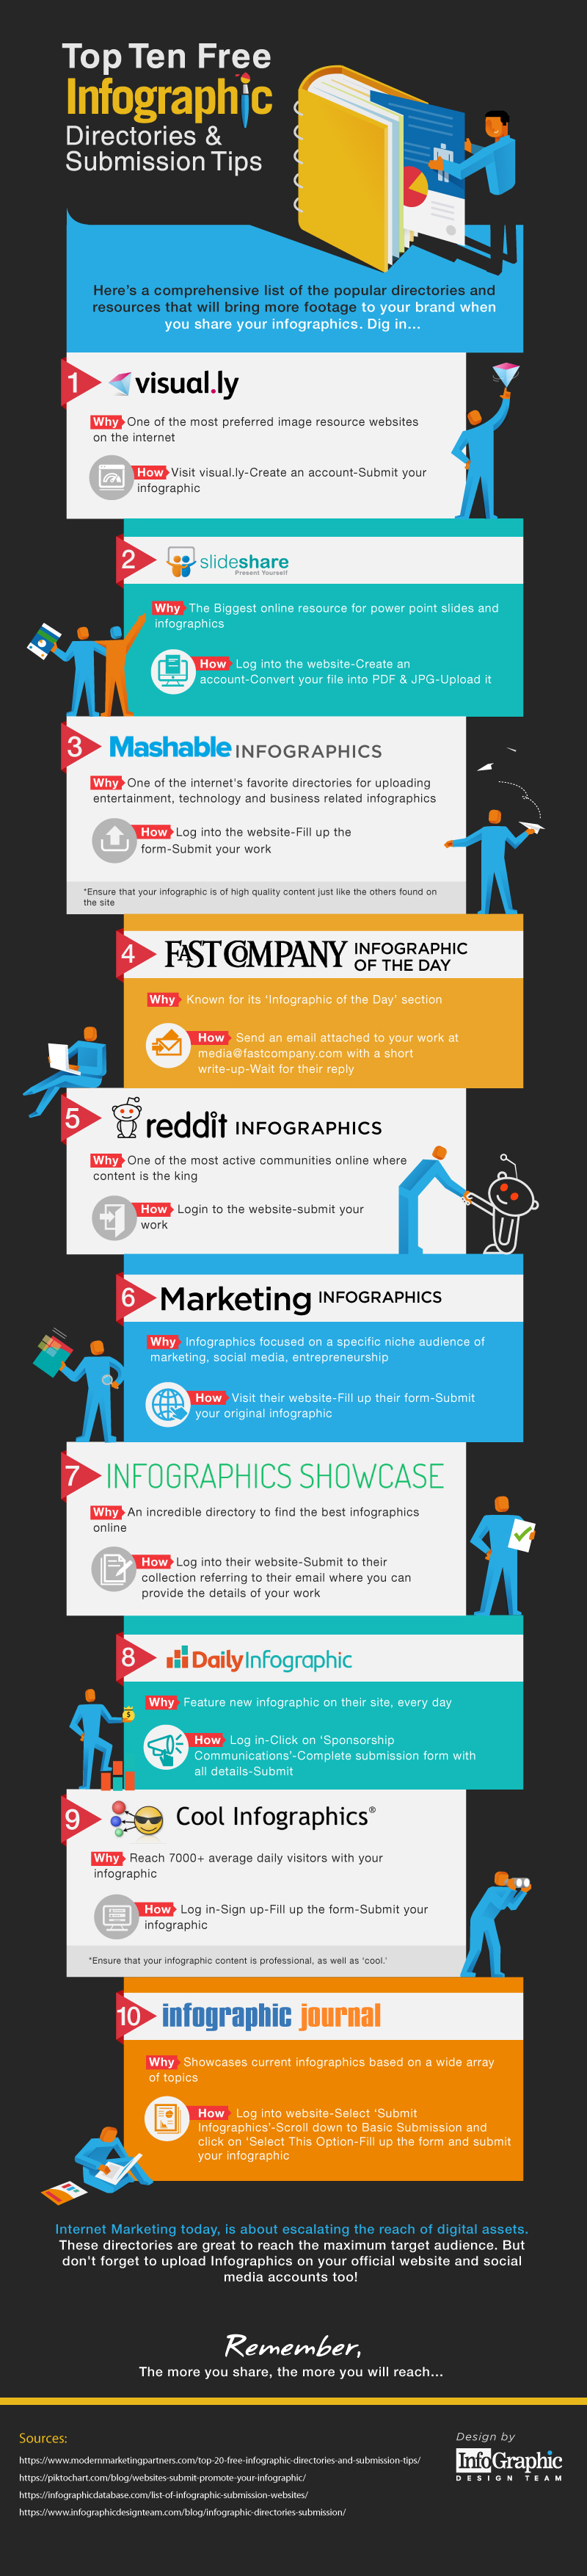 top-10-infographic-directories-and-submission-tips